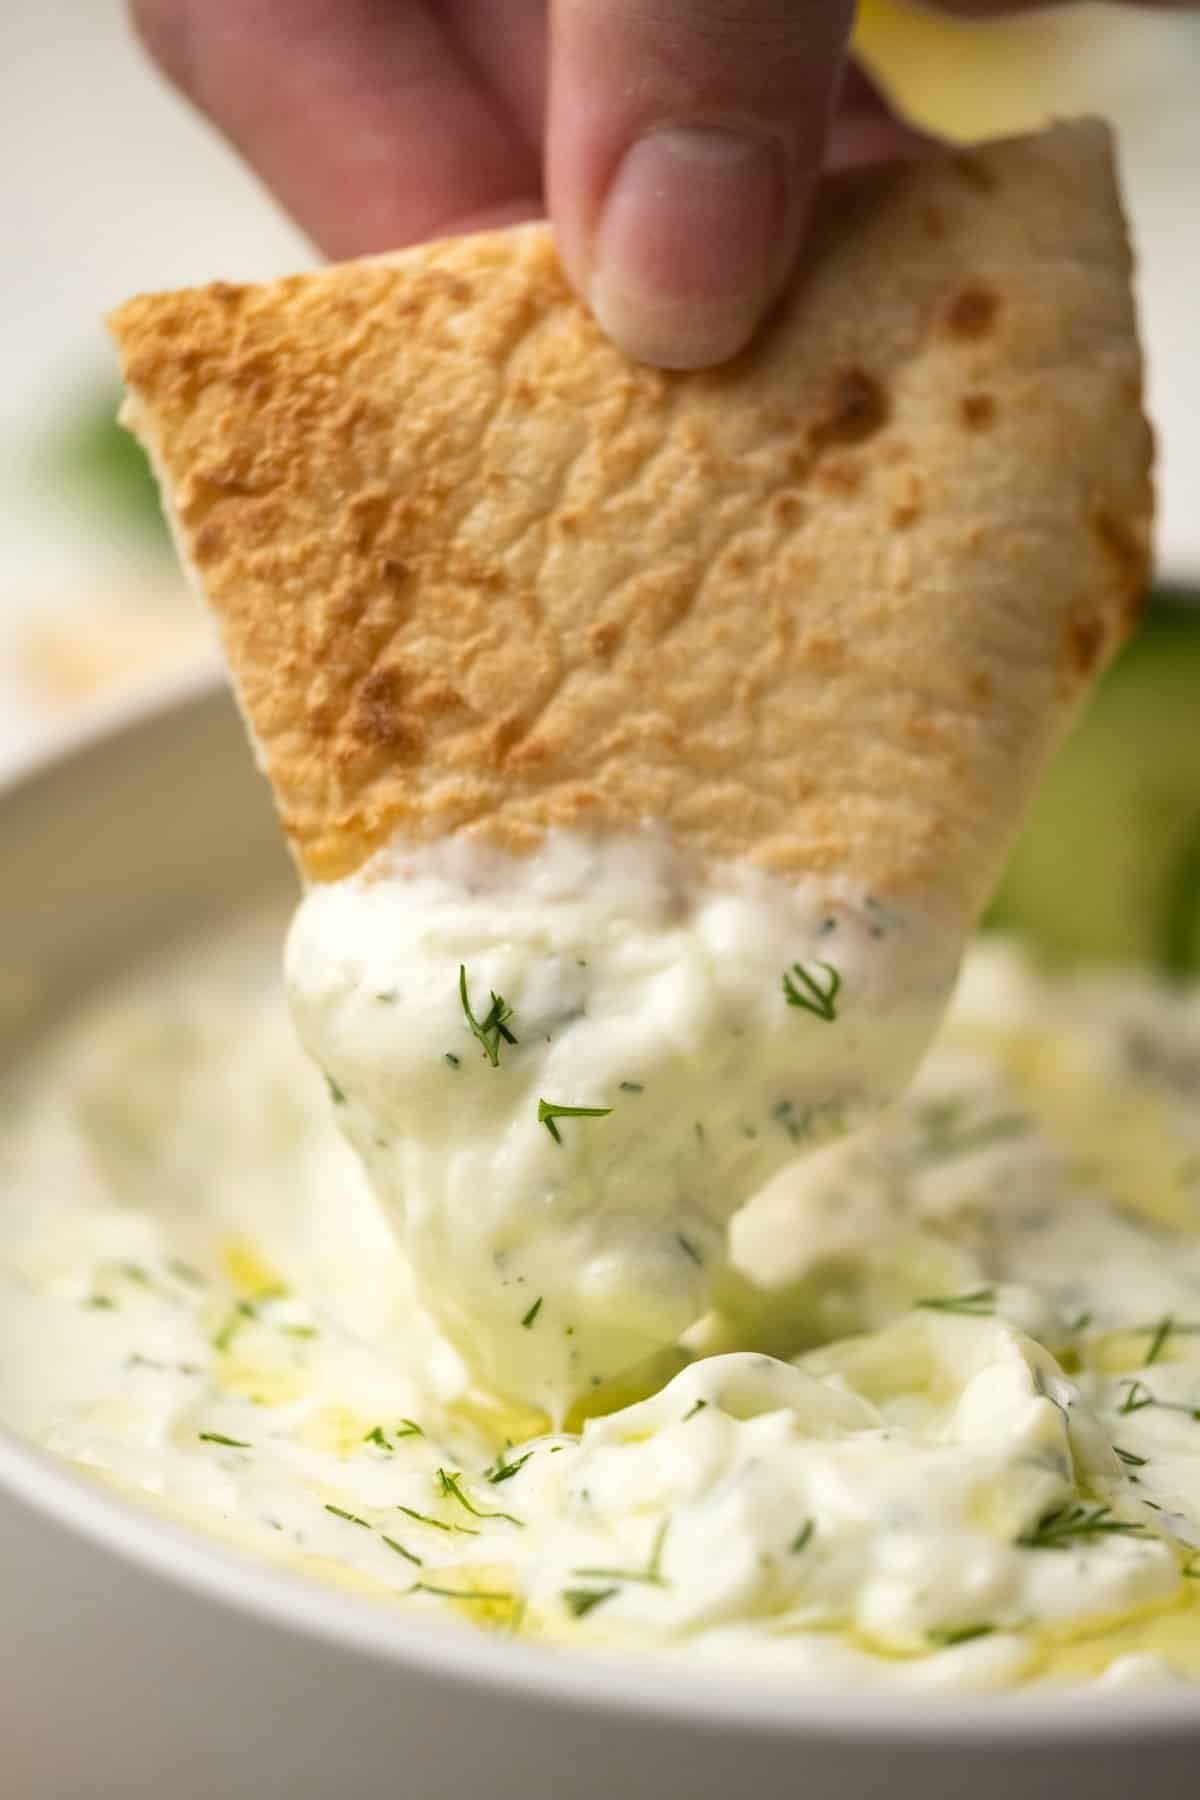 Pita bread dipping into a bowl of tzatziki.